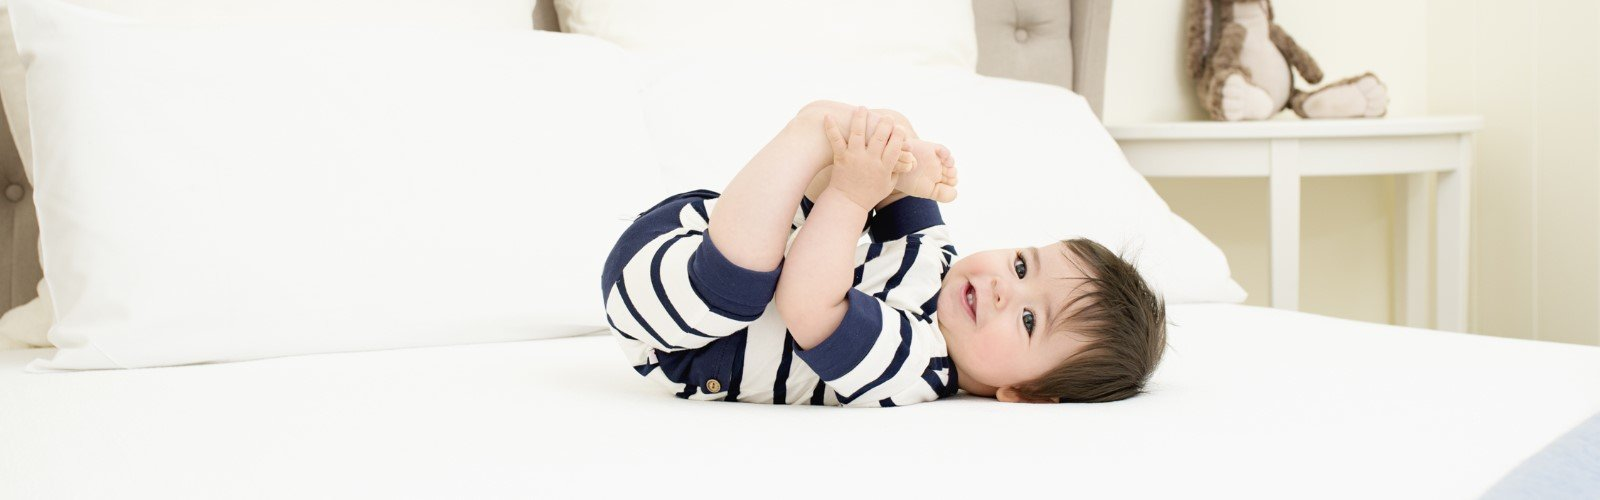 Li'l Zippers - Australia's Premier Baby Brand - Rompers - Beanies - Blankets - Gift Sets